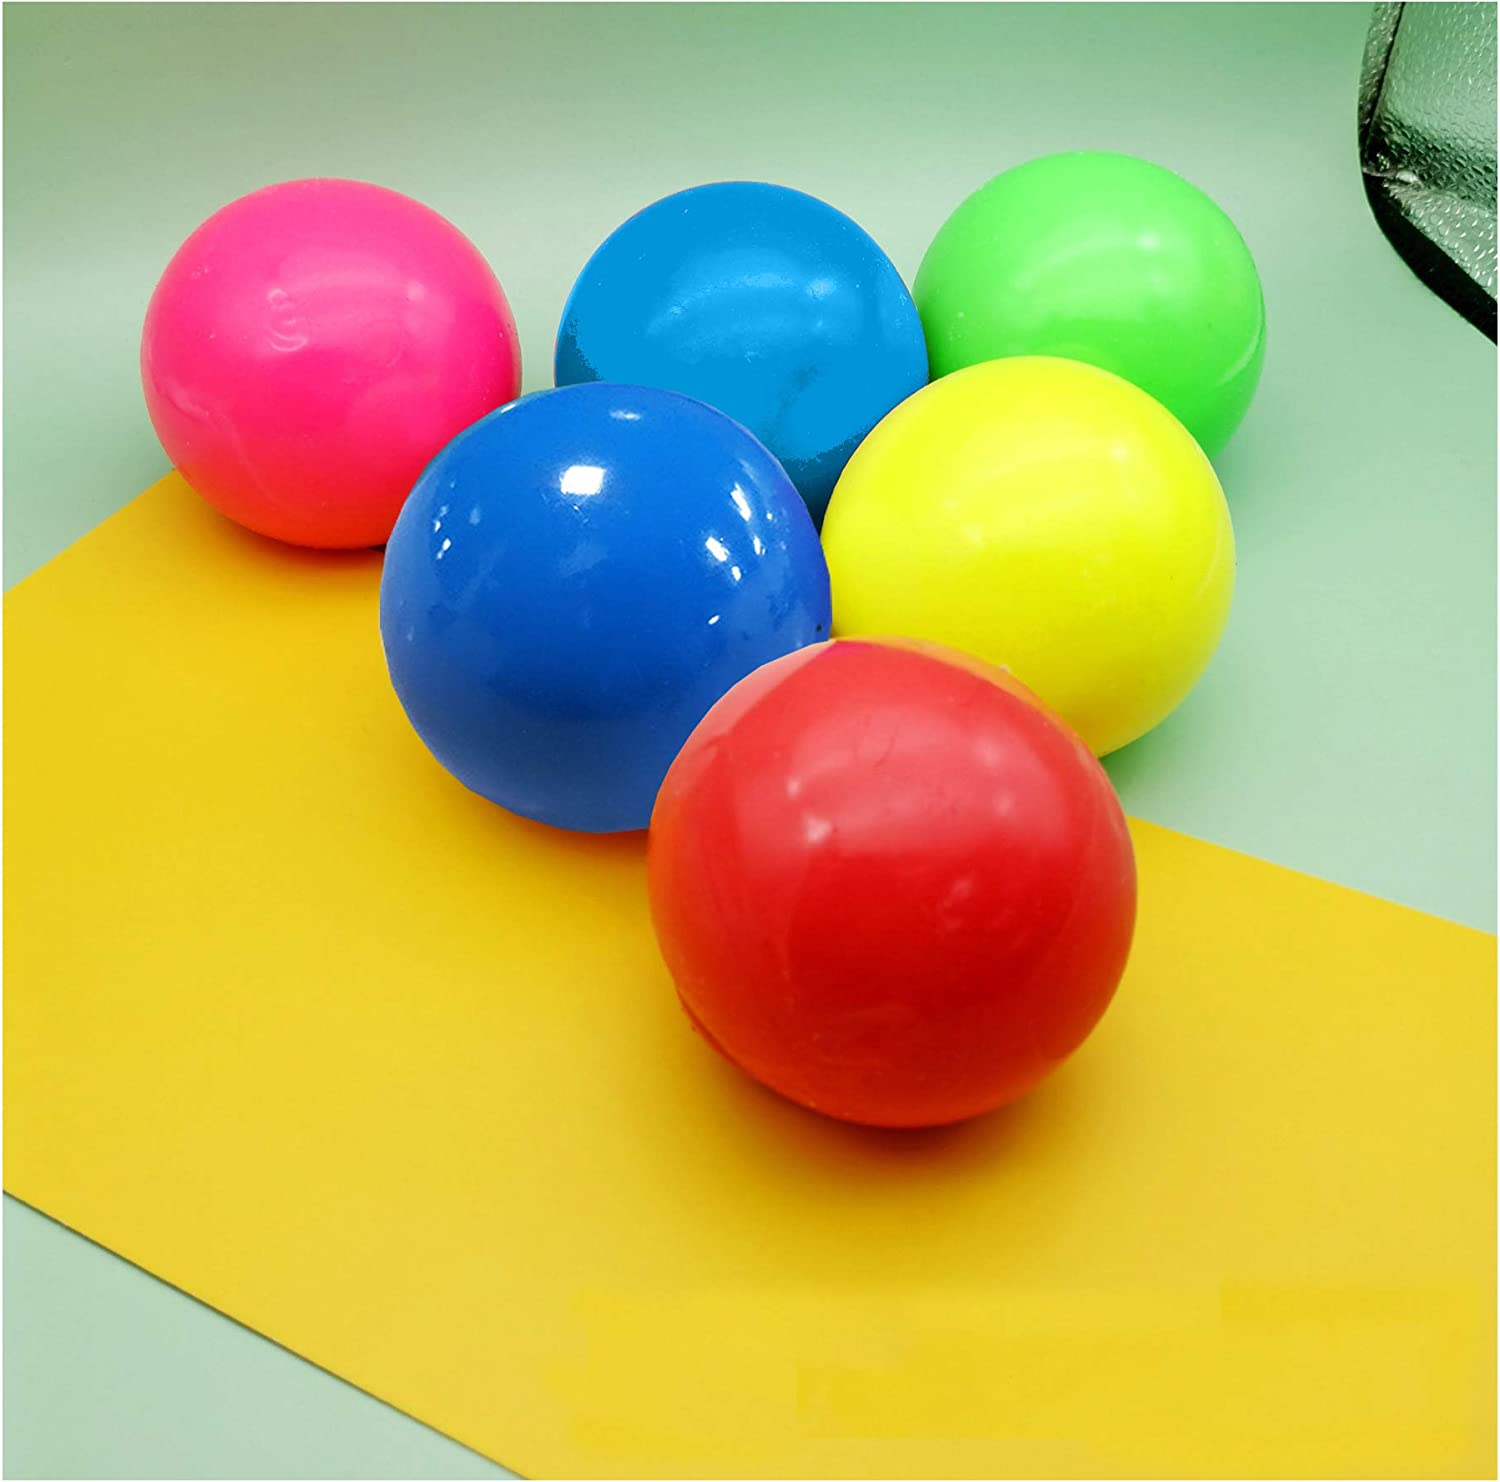 Stick to The Wall and Slowly Fall Off OCD Fun Toy for ADHD Anxiety 6 Pcs Luminescent Stress Relief Balls Sticky Ball Squishy Glow Stress Relief Toys for Kids and Adults Tear-Resistant